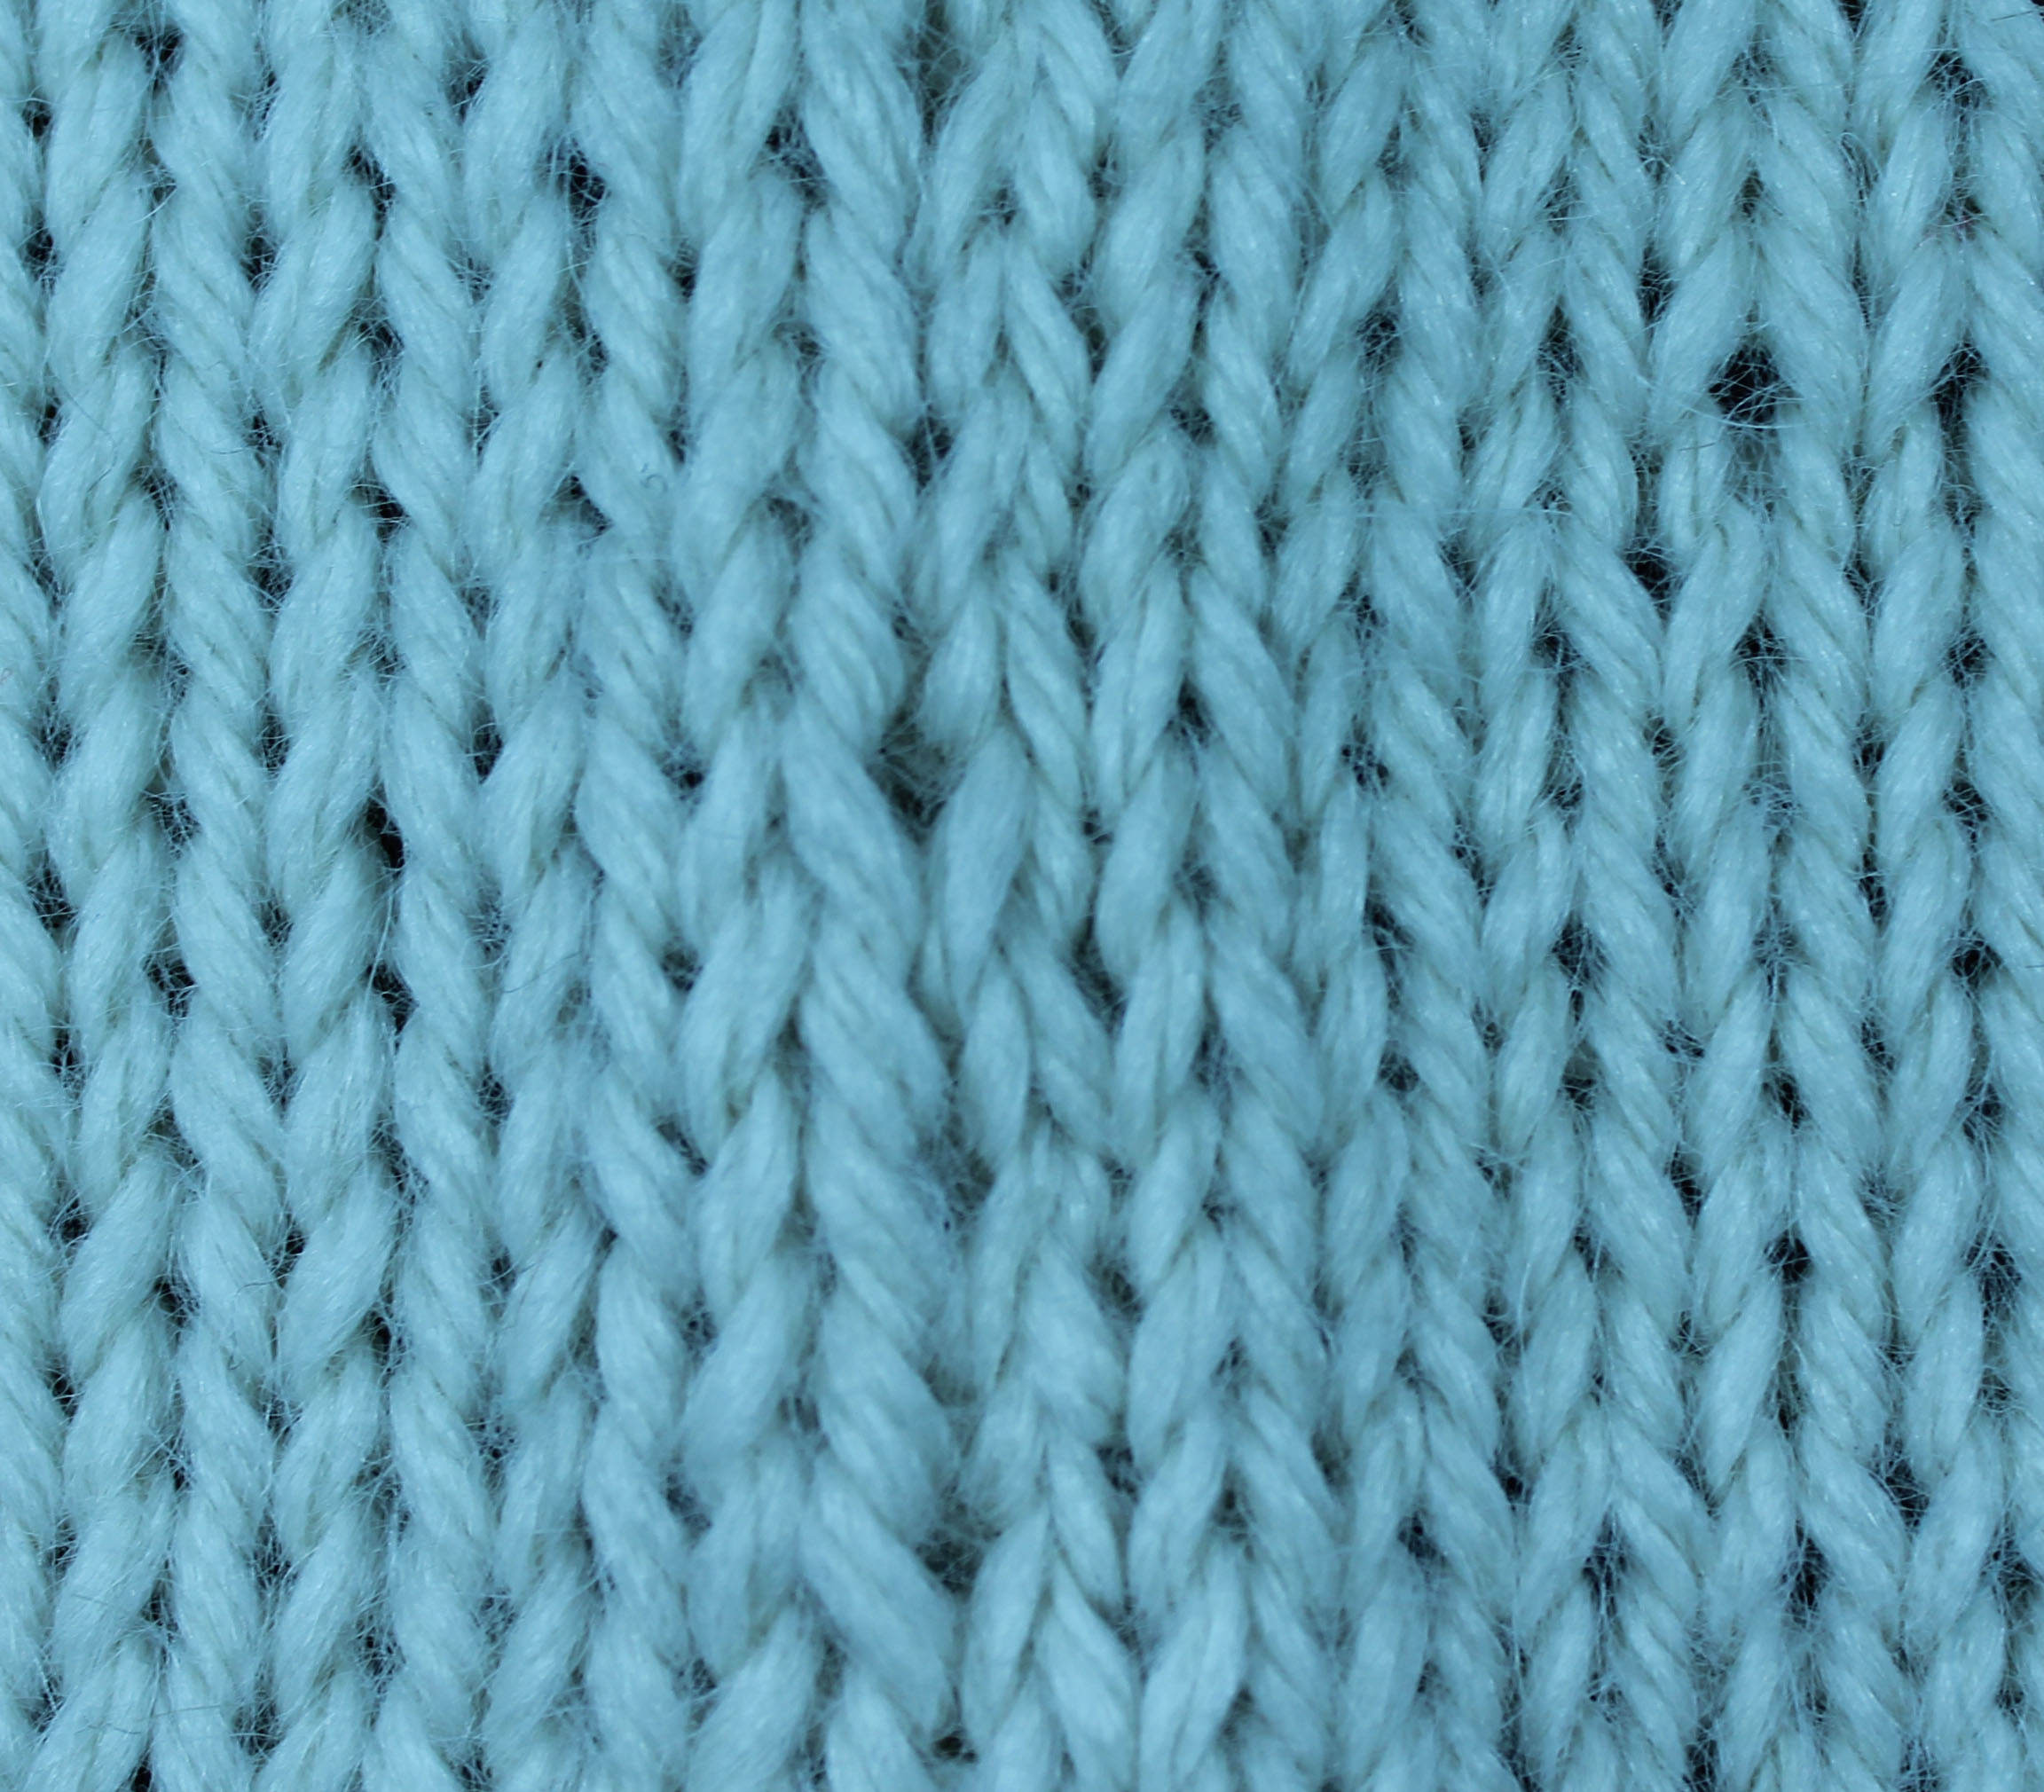 Knitting Stitches Joining Seams : How to Sew Stockinette Stitch Seams (St. st) knotty bebe